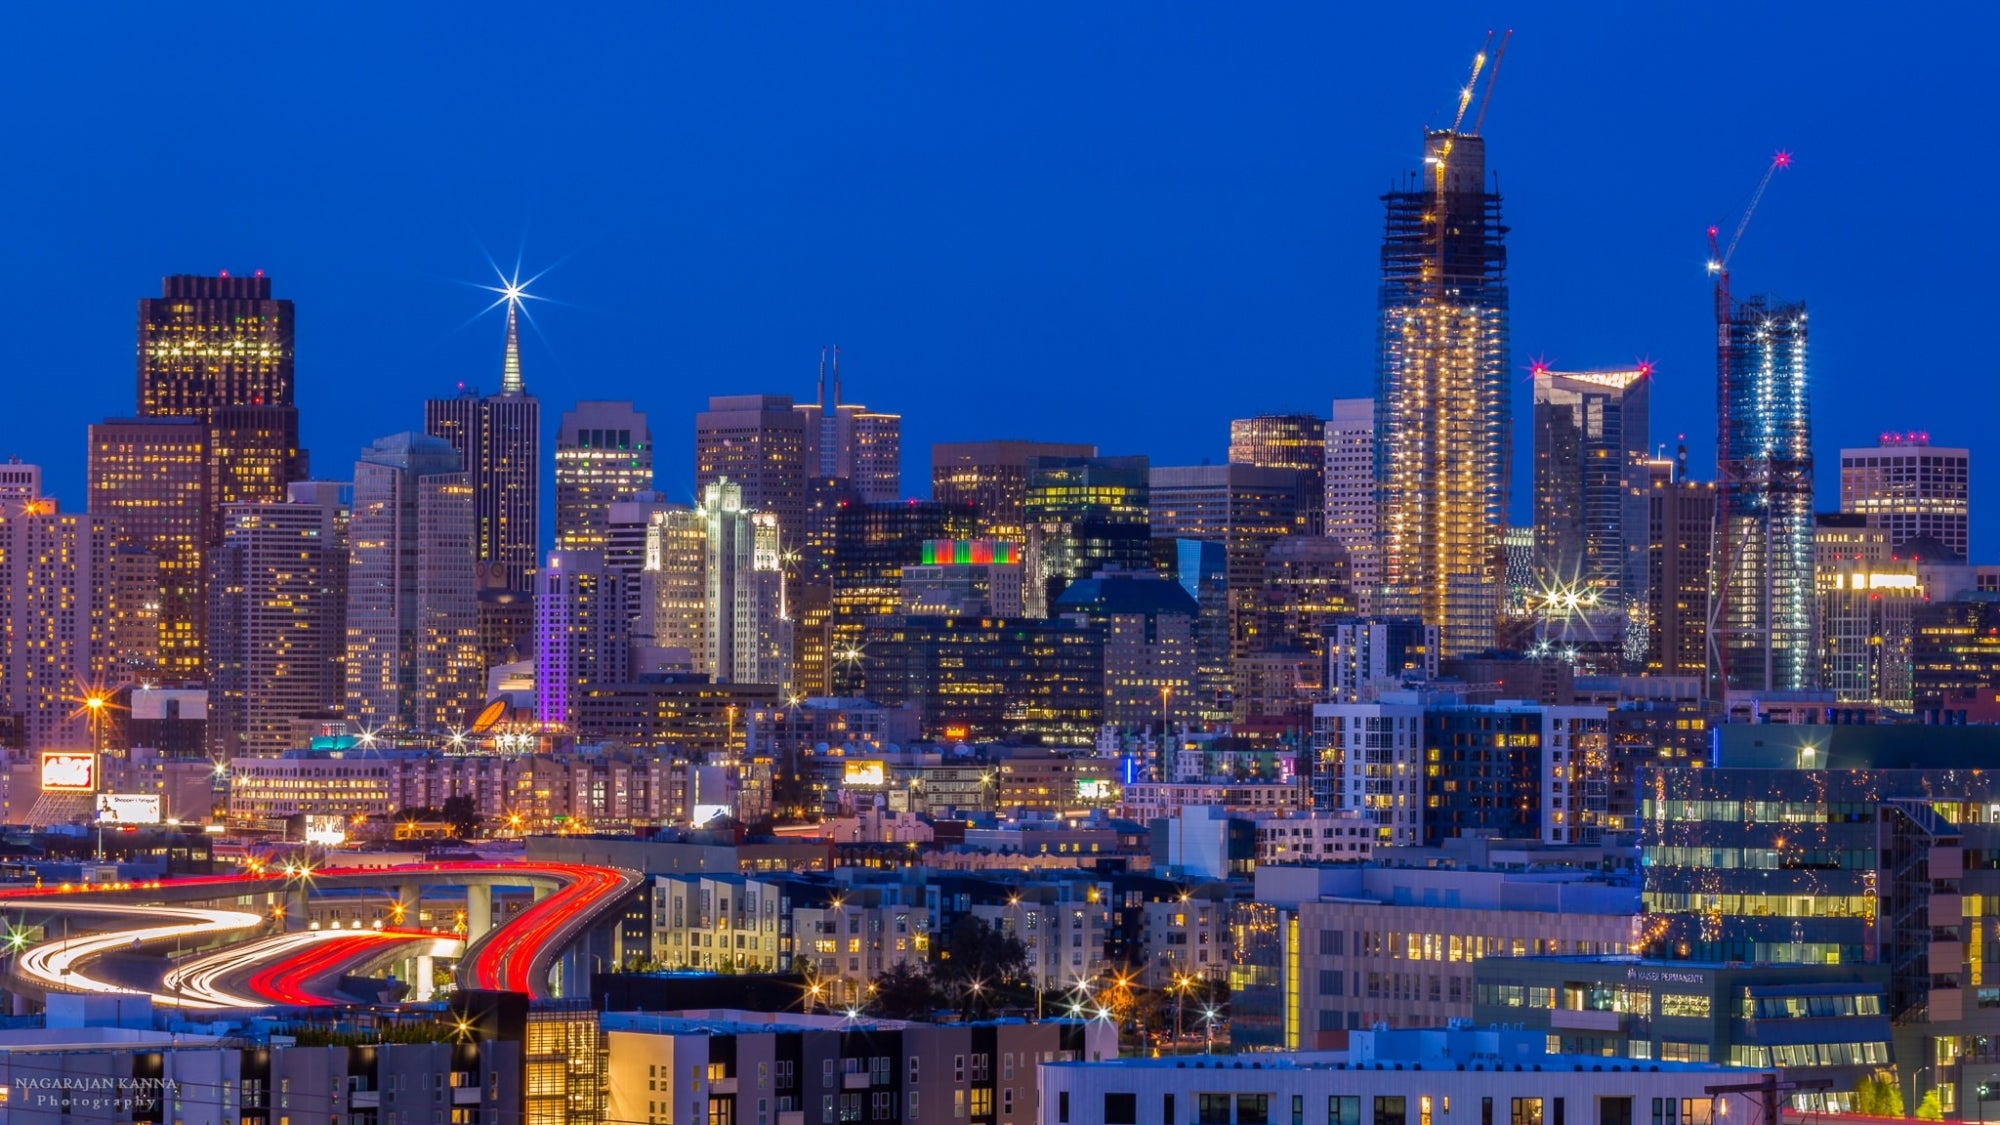 San Francisco skyline at night, as viewed from Potrero Hill